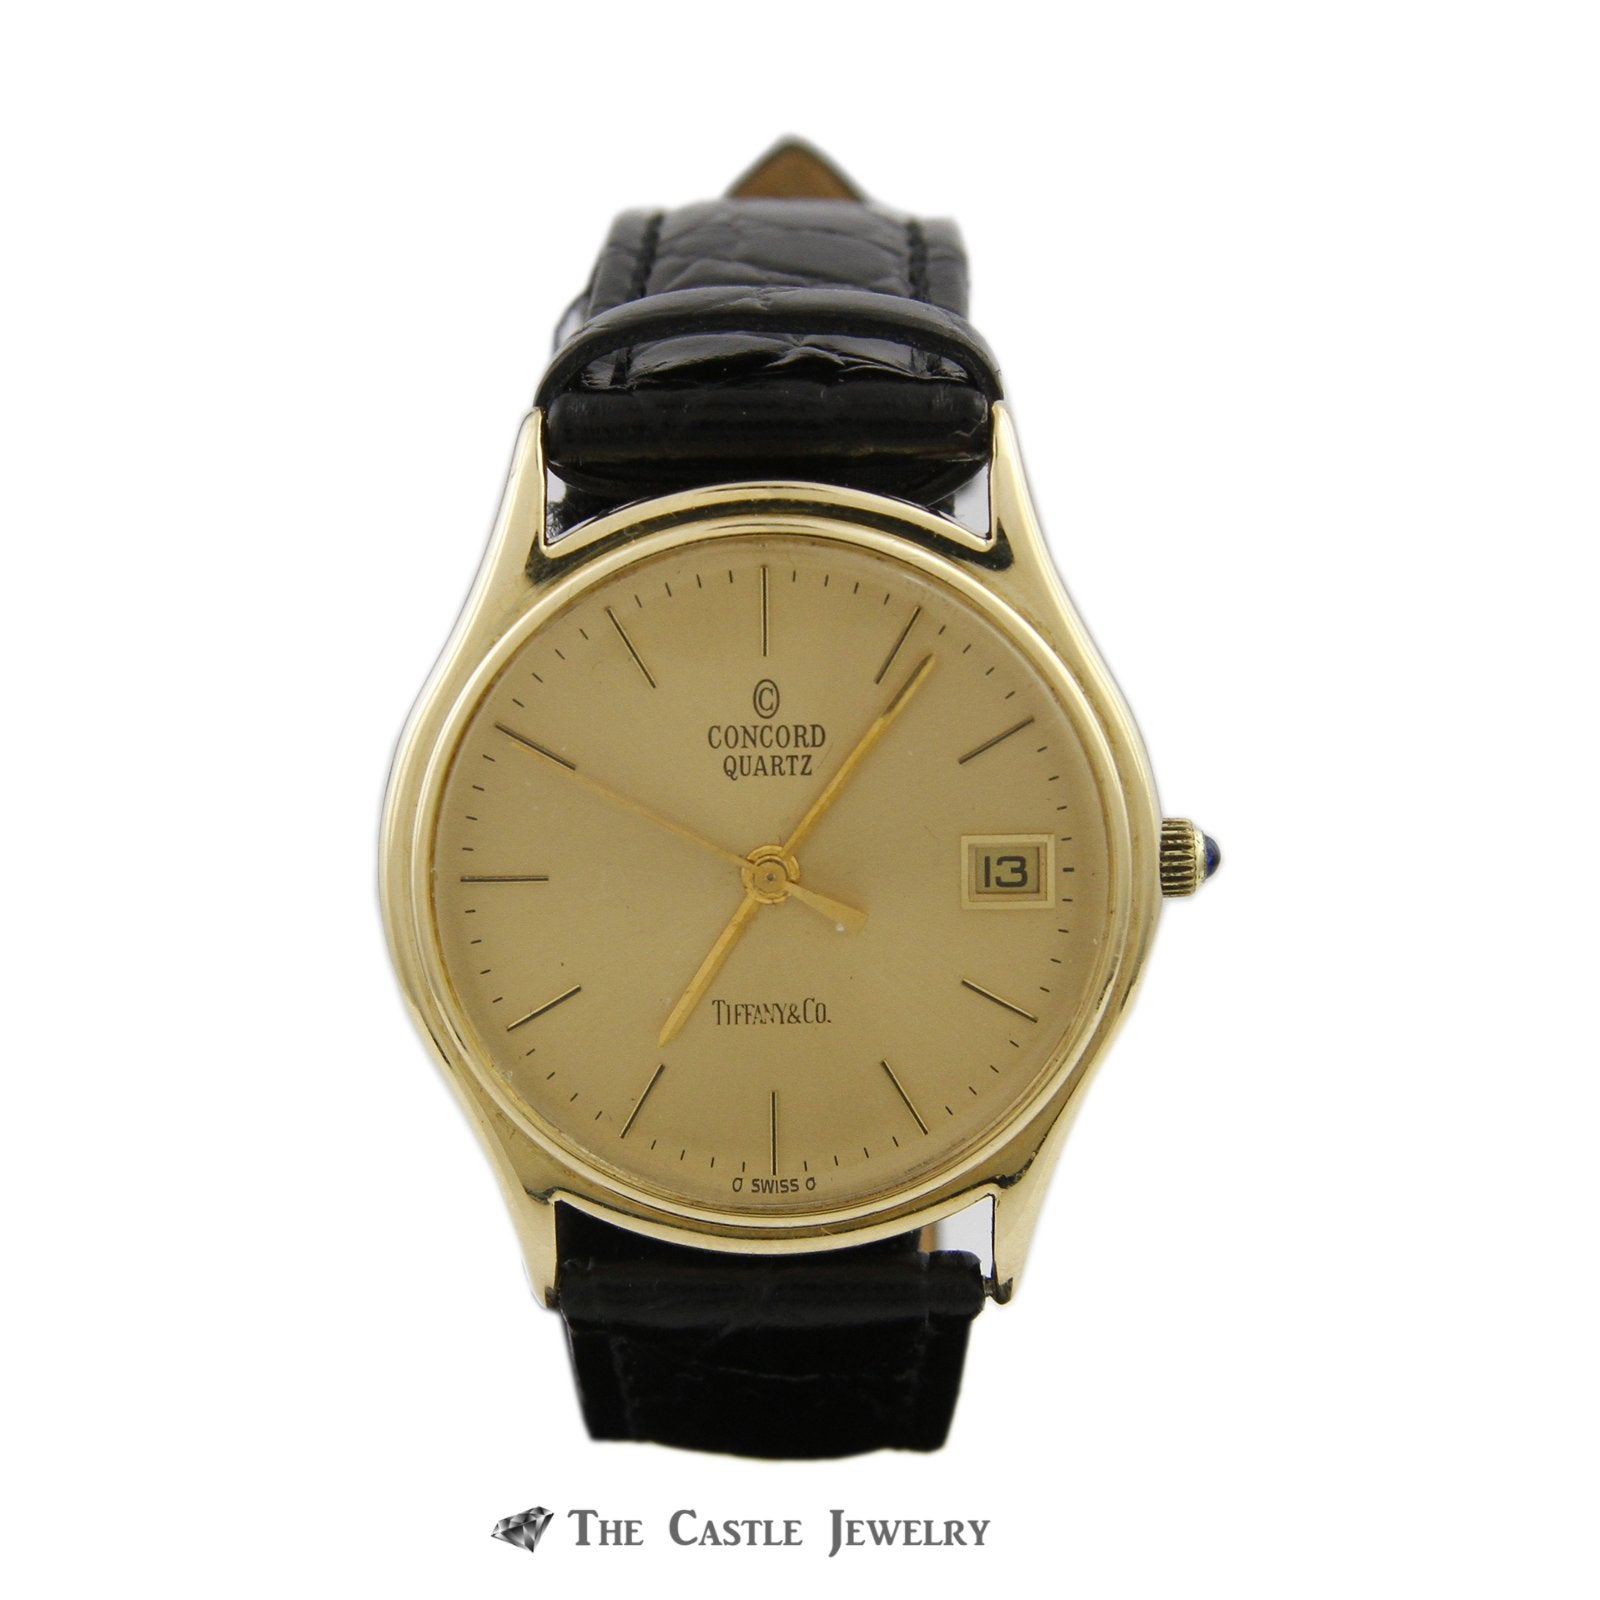 "Tiffany & Co. ""Concord"" Quartz Watch w/ Black Leather Band w/ 14k Yellow Cold Case & Buckle"